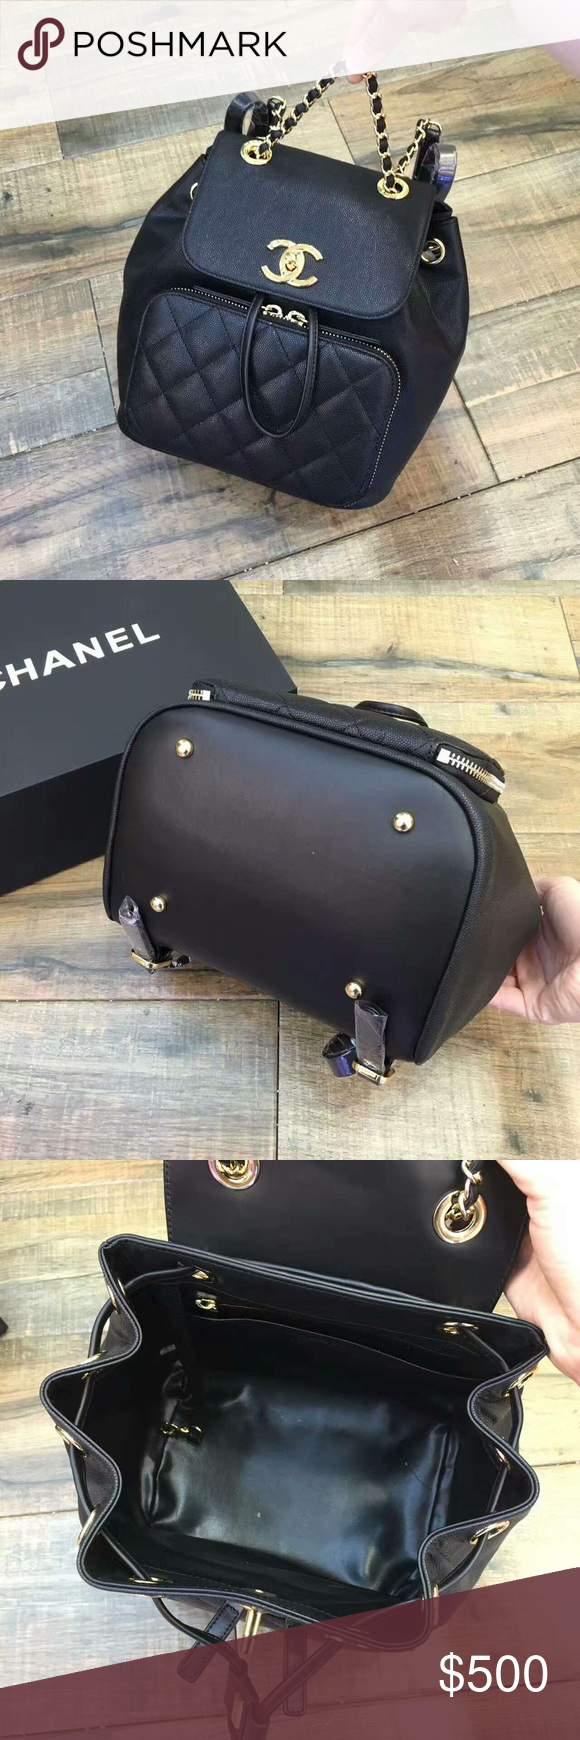 Chanel business affinity backpack Brand new never worn ...